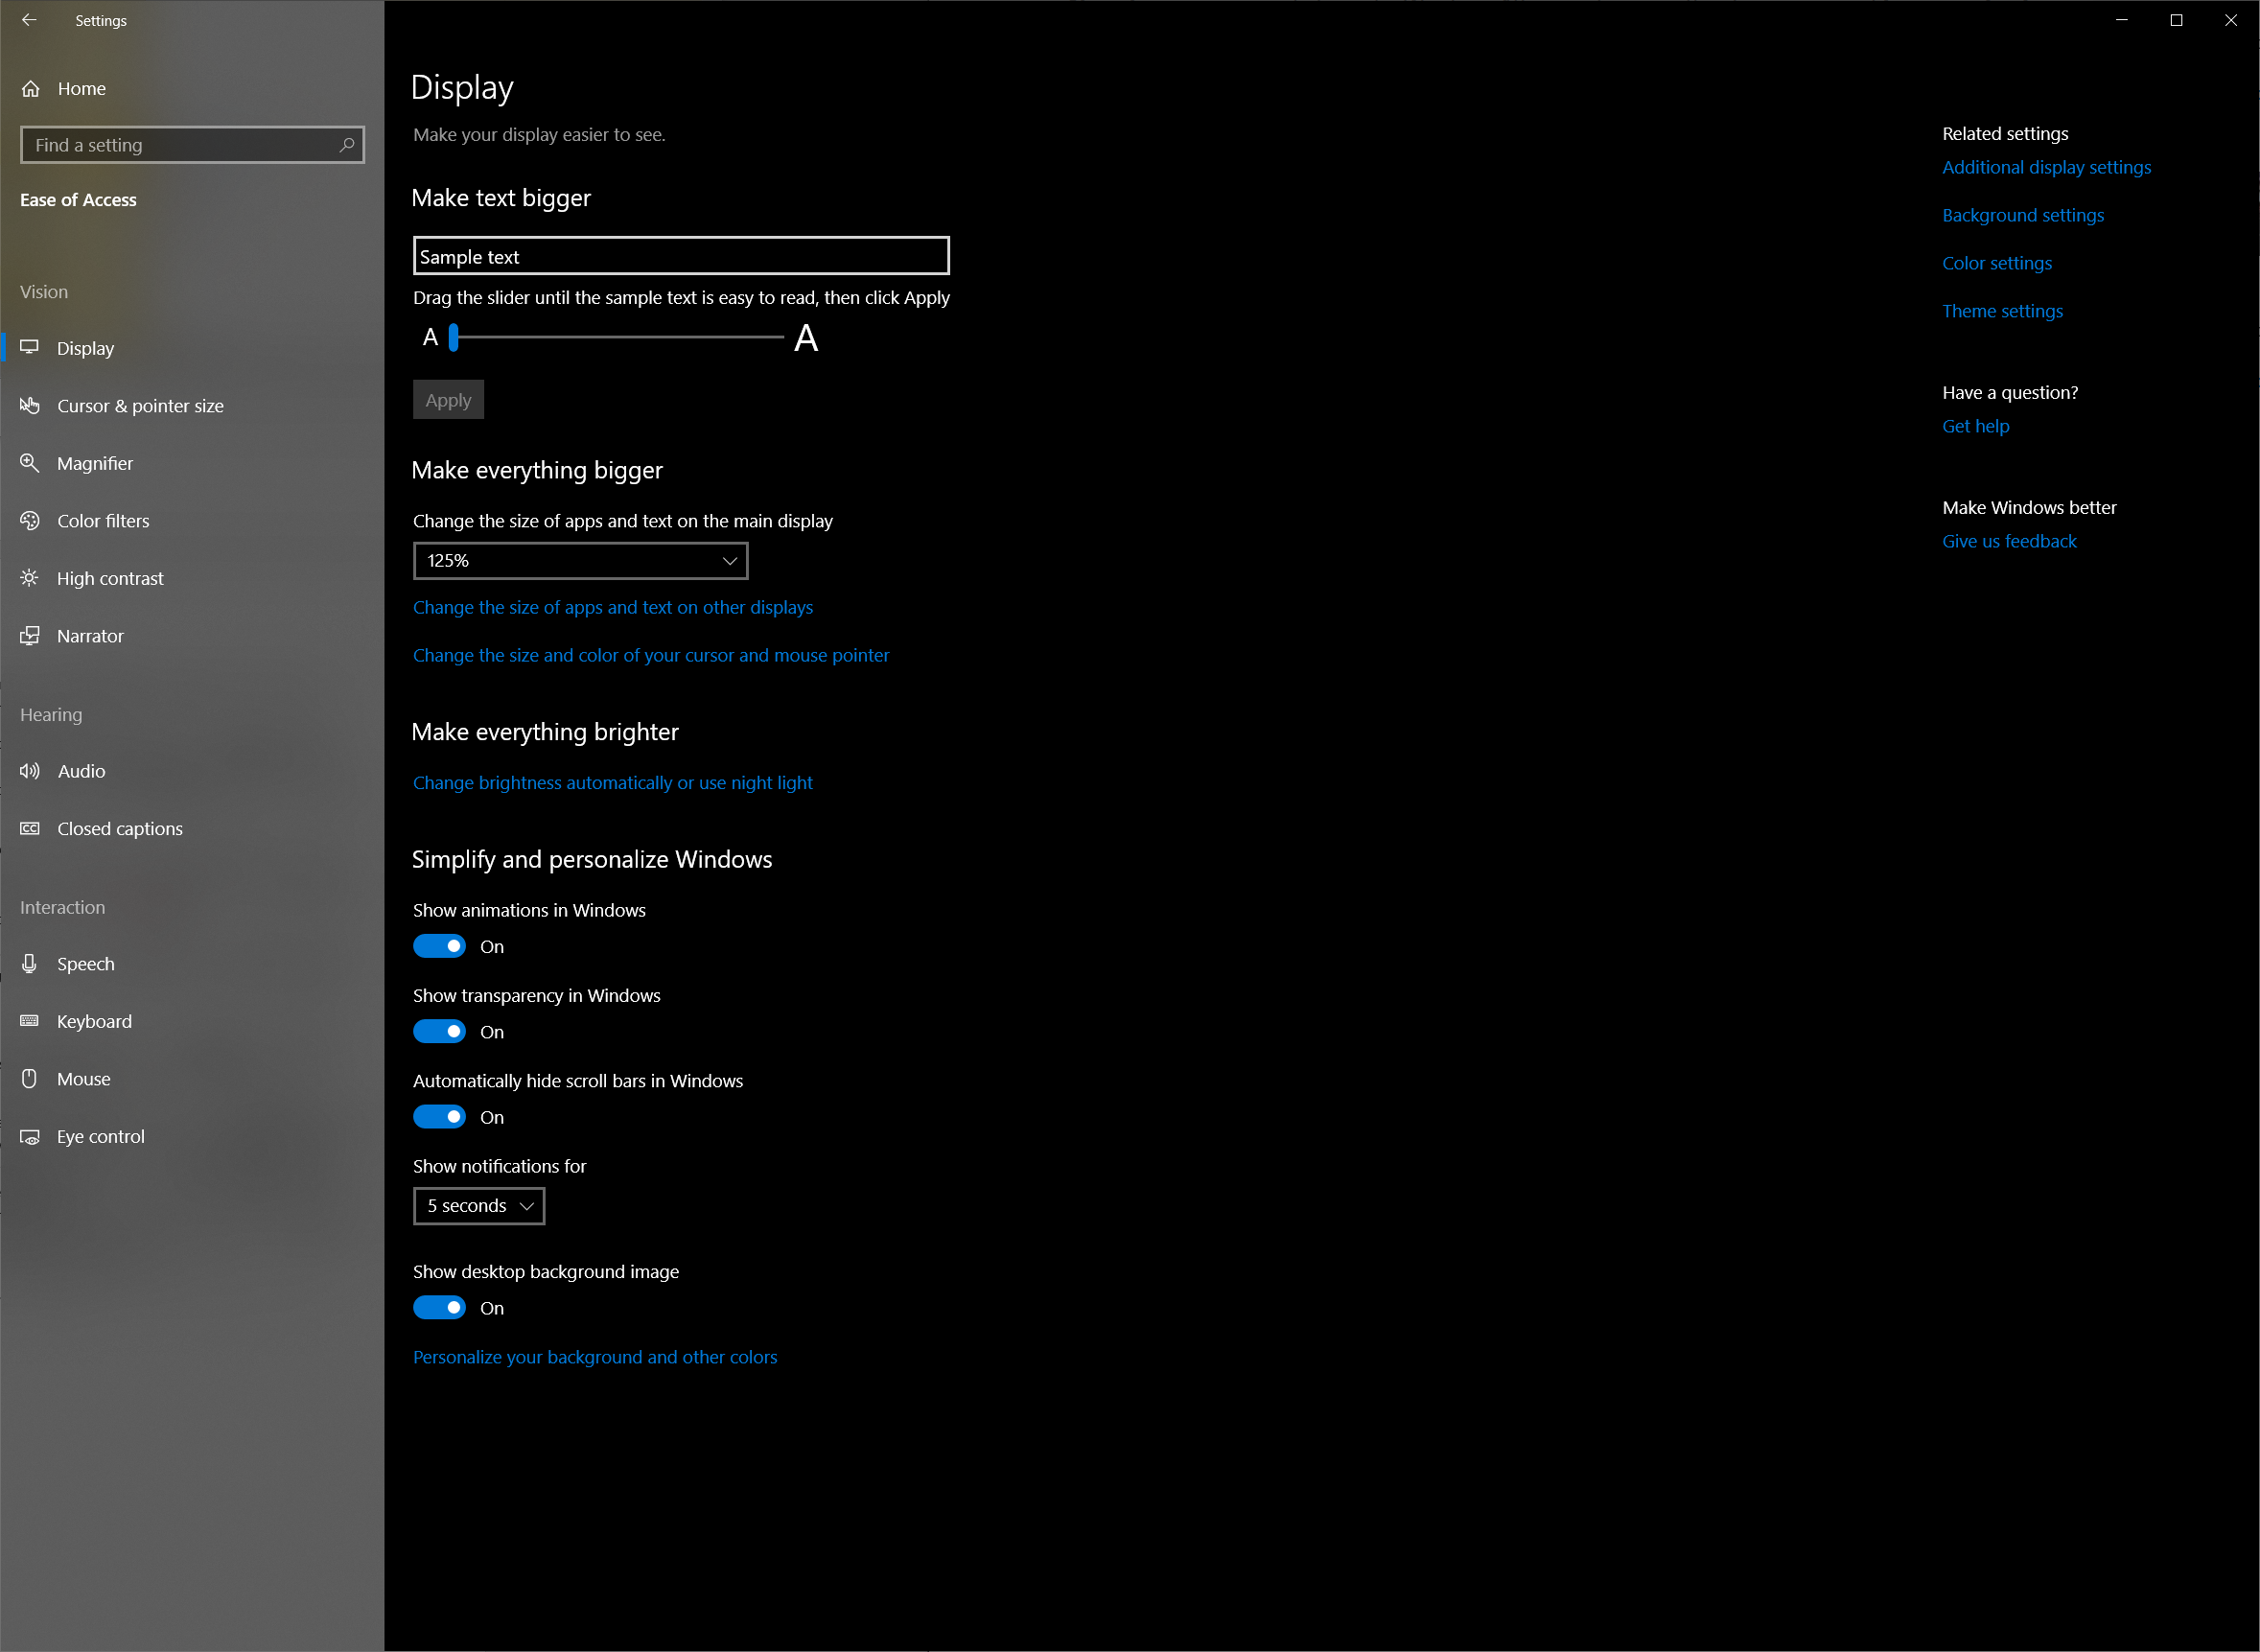 Accessibility and Typing Updates - The Windows 10 October